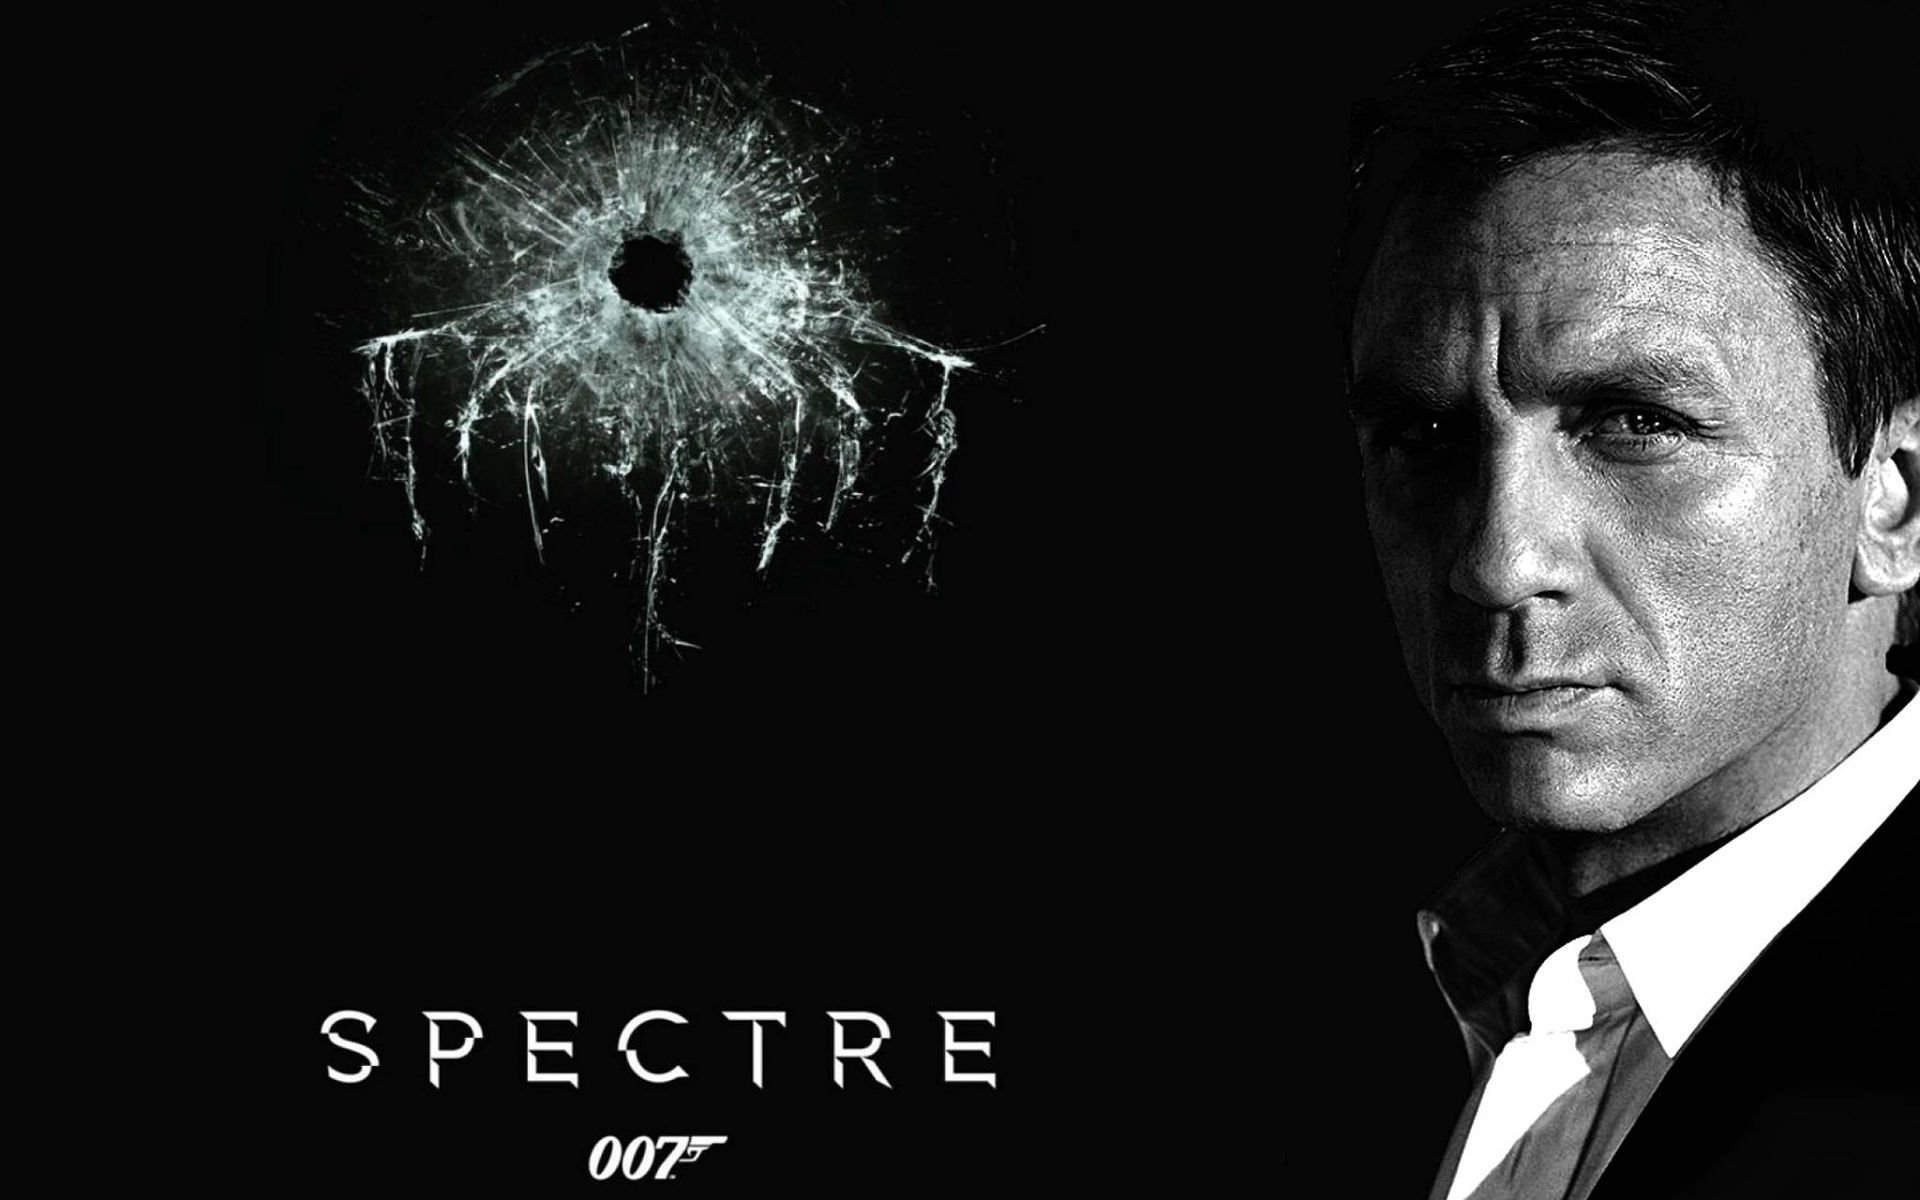 james bond spectre stream movie4k